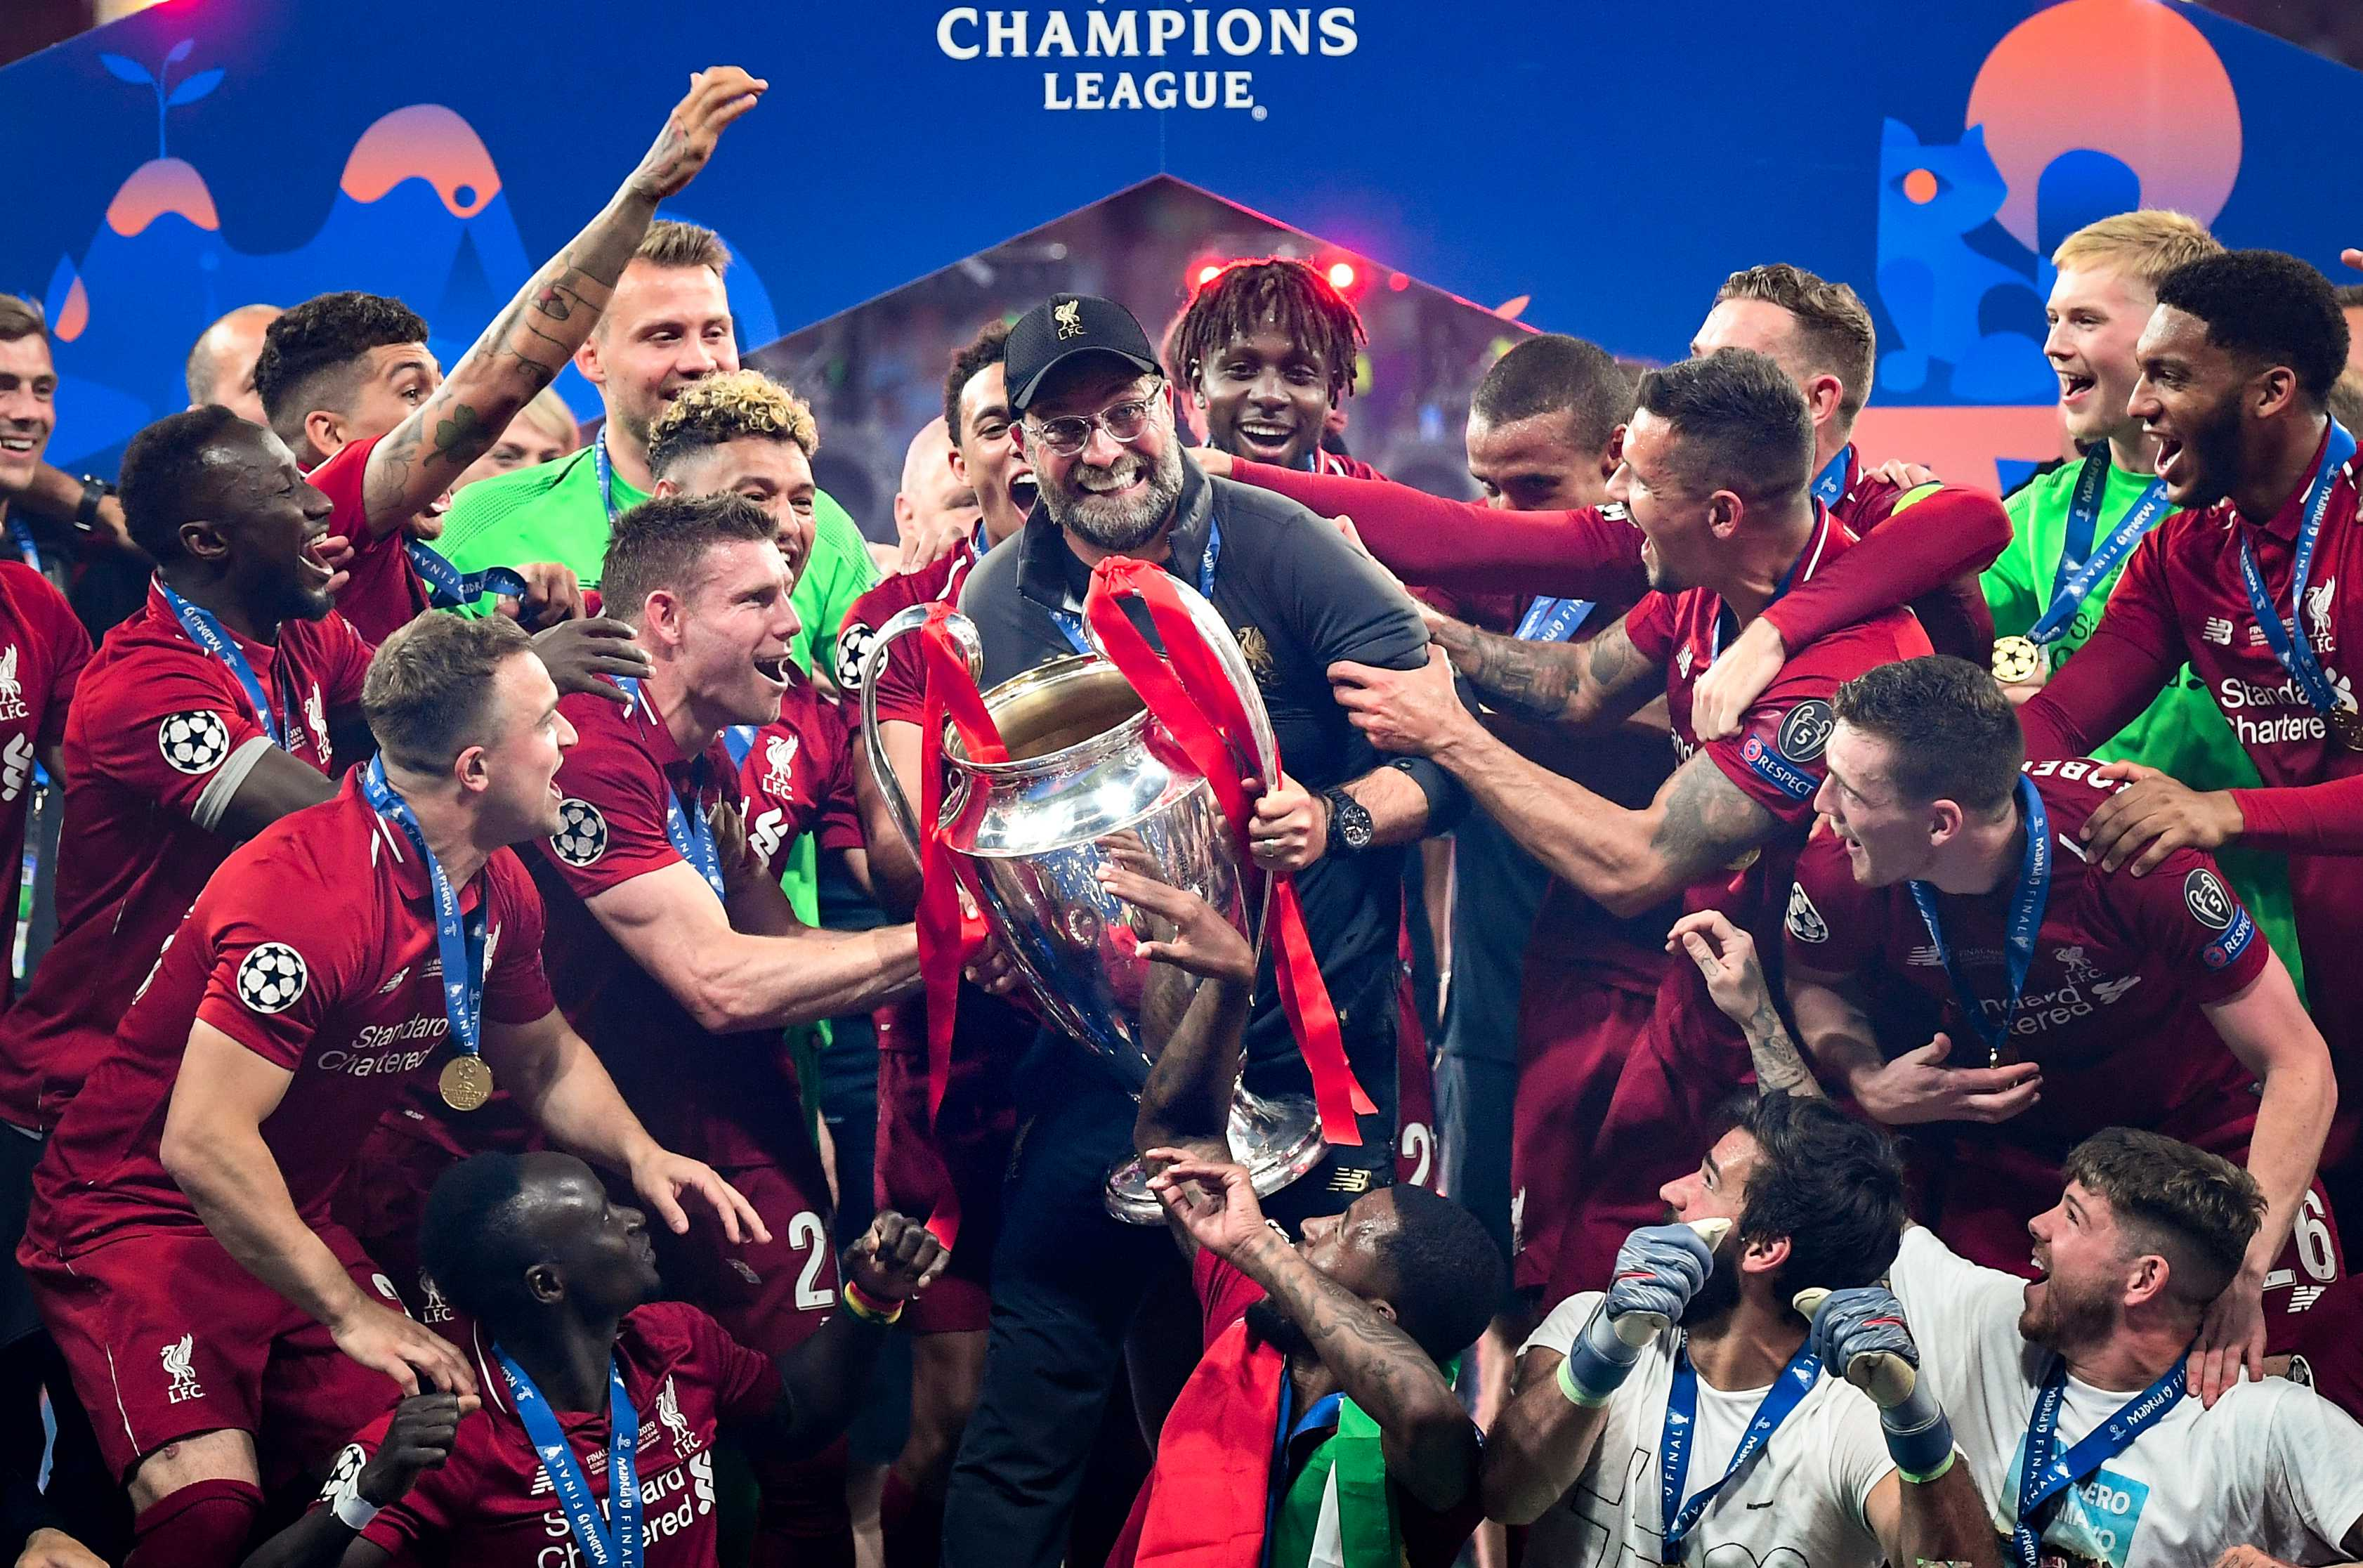 102 AIPS nations voted: Liverpool FC the Best Team of 2019 and IAAF World Championships Doha the Best Press Facility